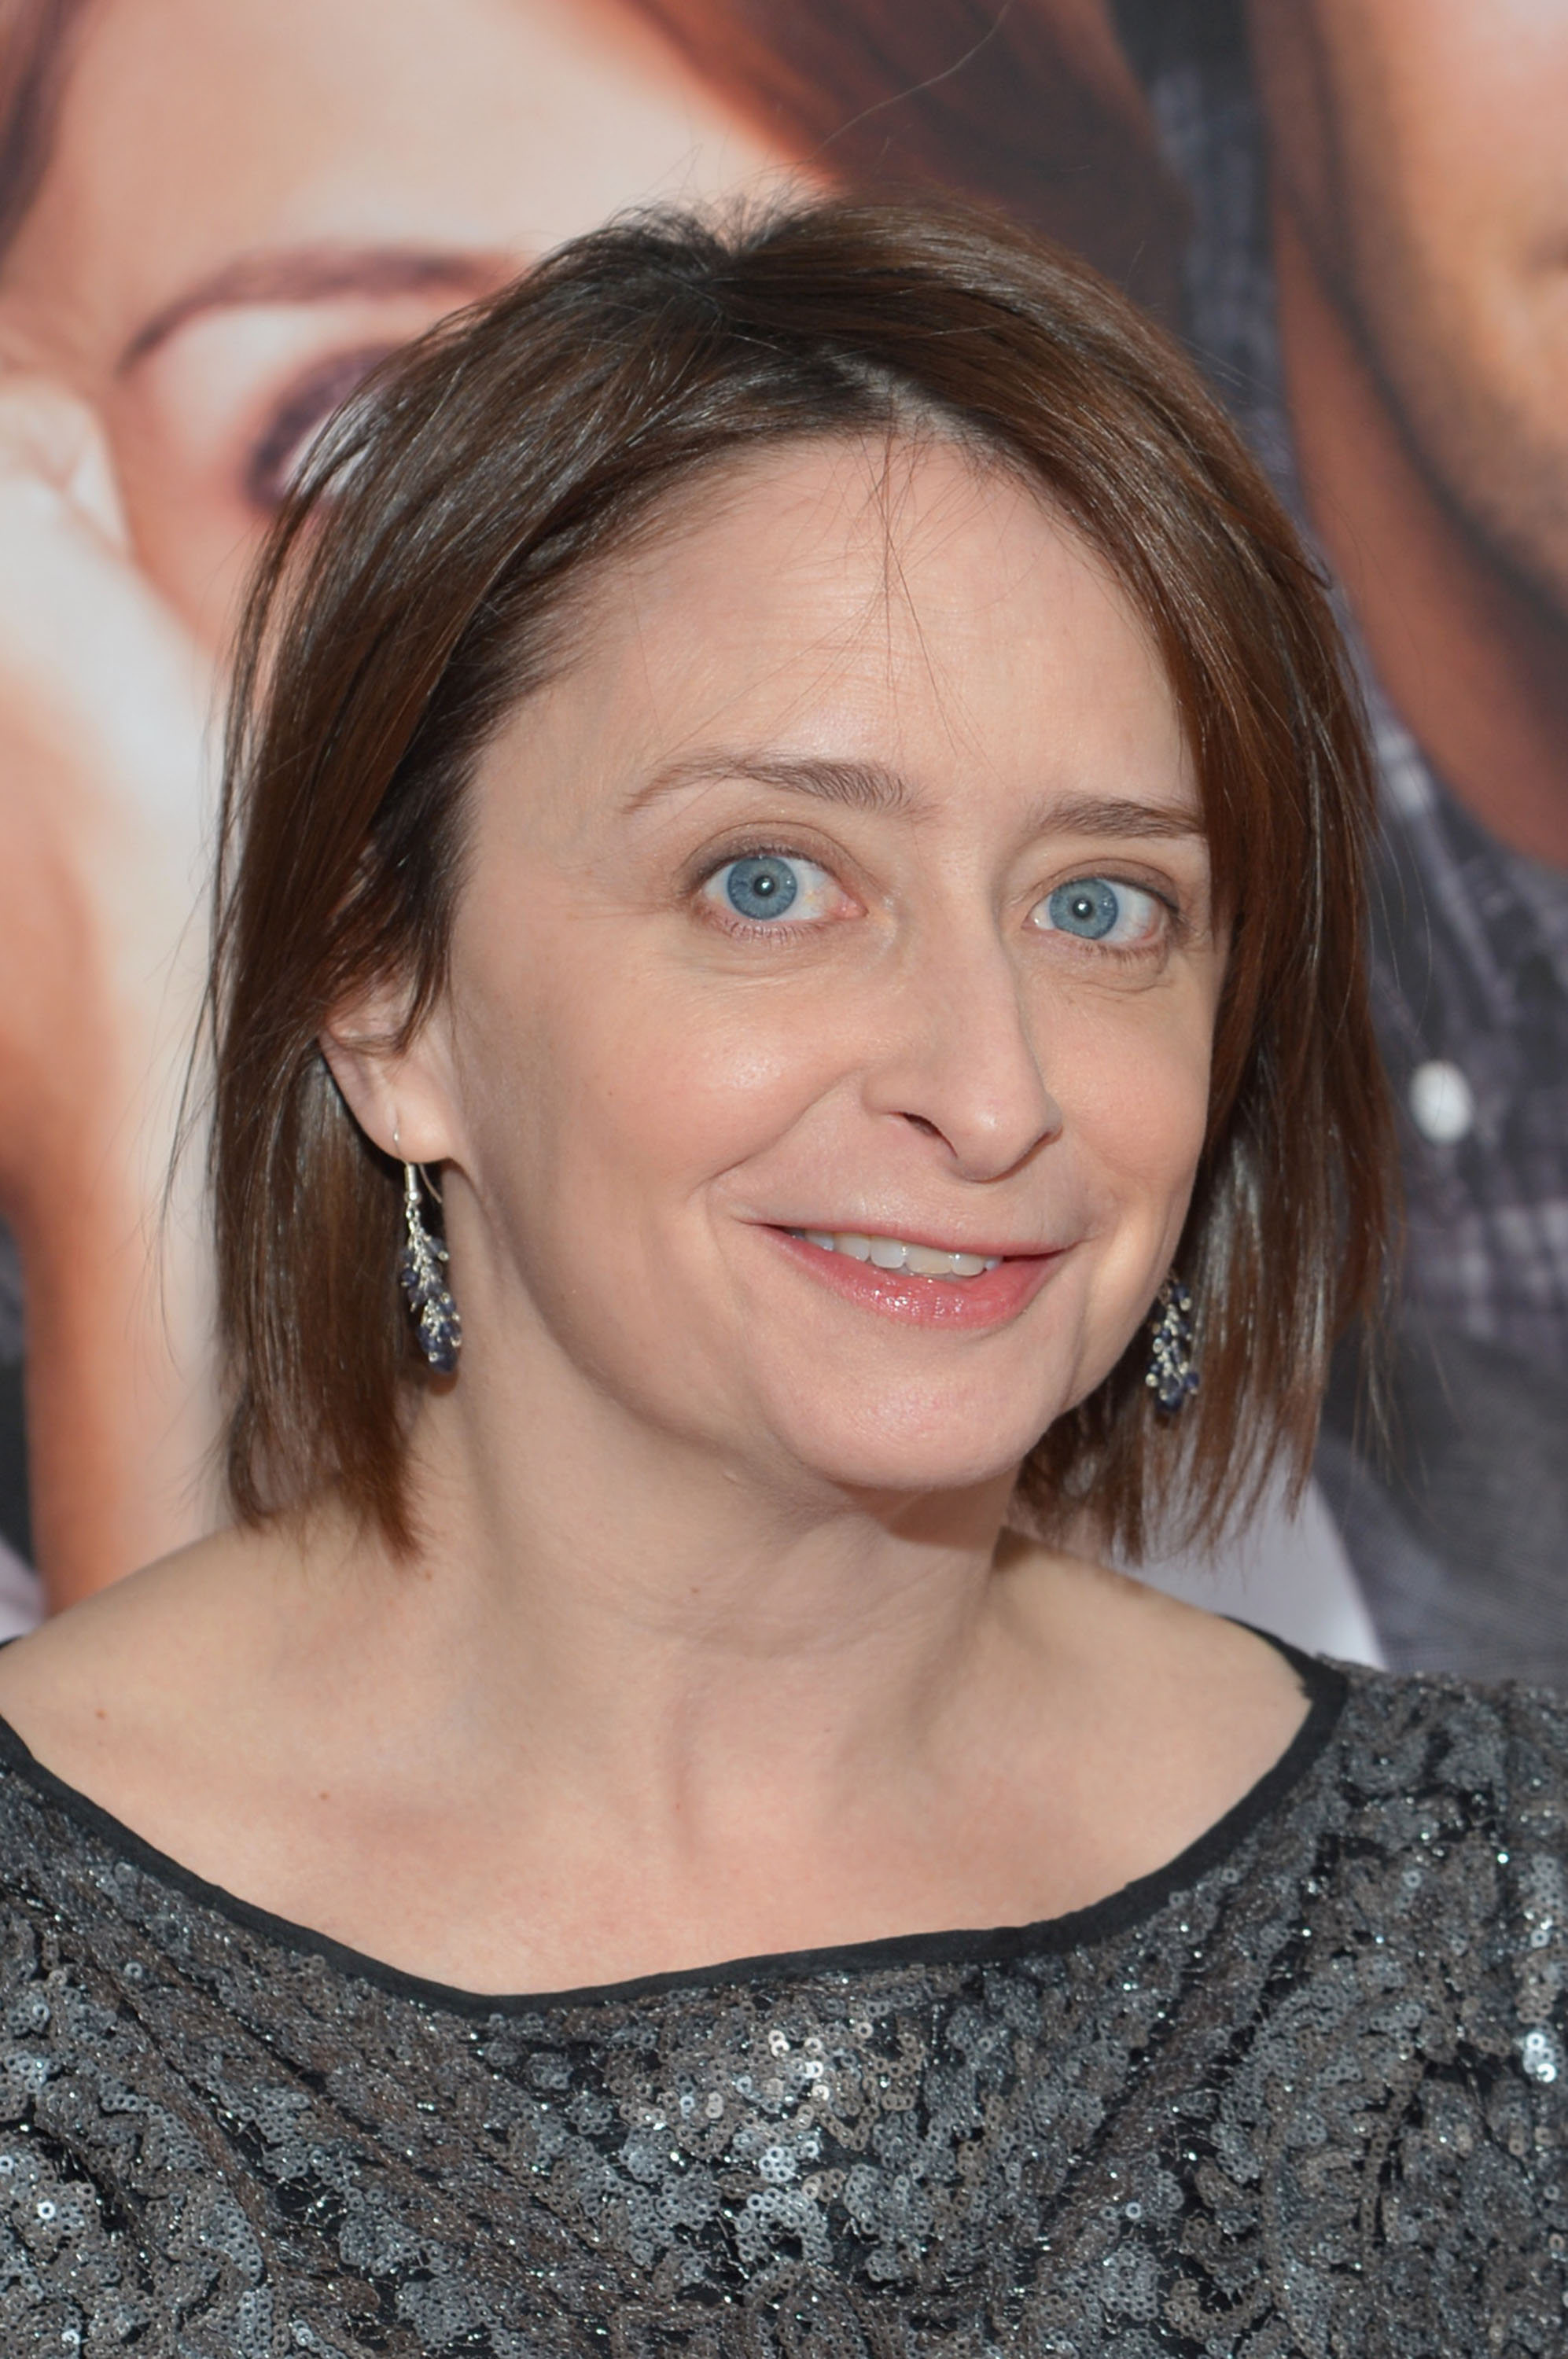 http://media4.popsugar-assets.com/files/2013/03/10/3/192/1922398/2f7881ca93e2b2f1_163175660_10/i/Rachel-Dratch-attended-premiere-silver-dress.jpg